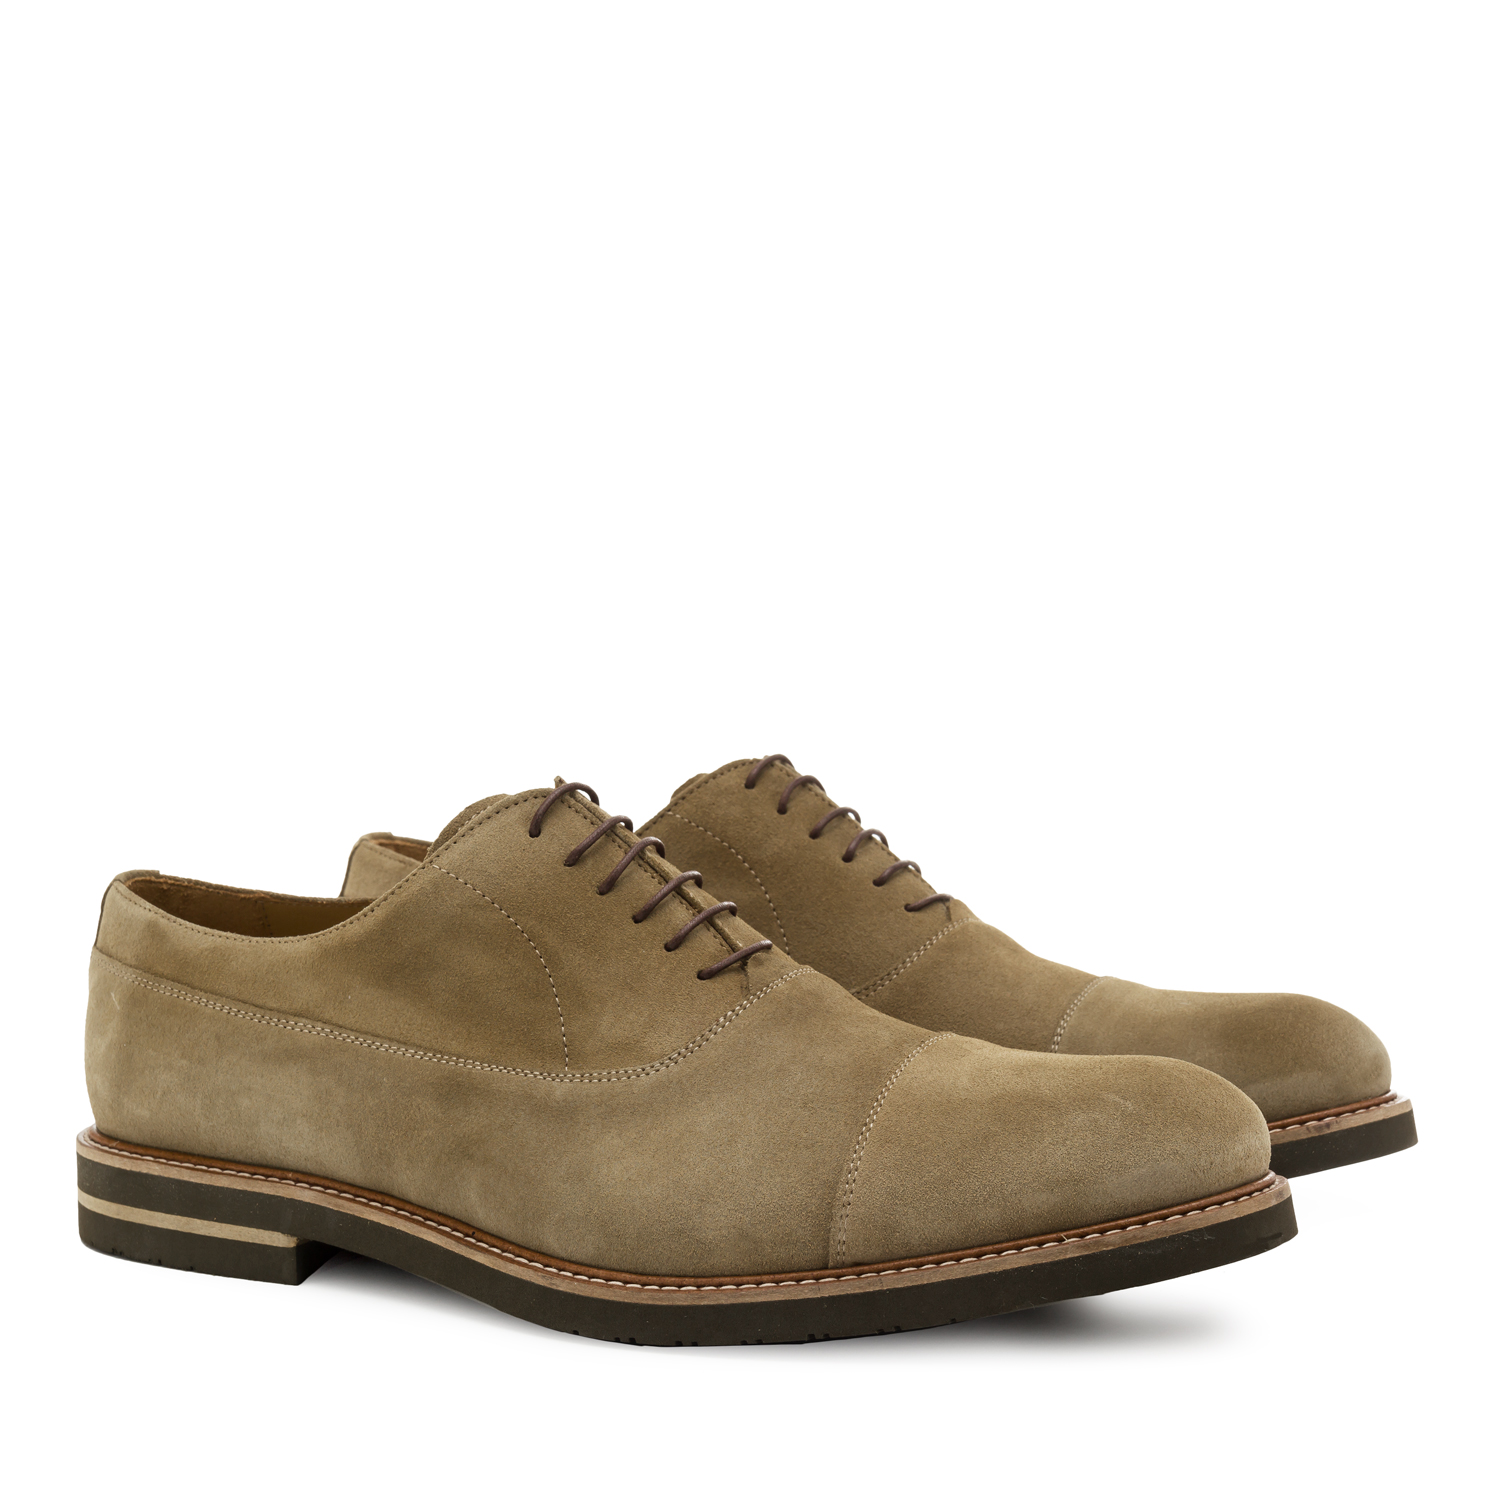 Oxford Shoes in Beige Split Leather